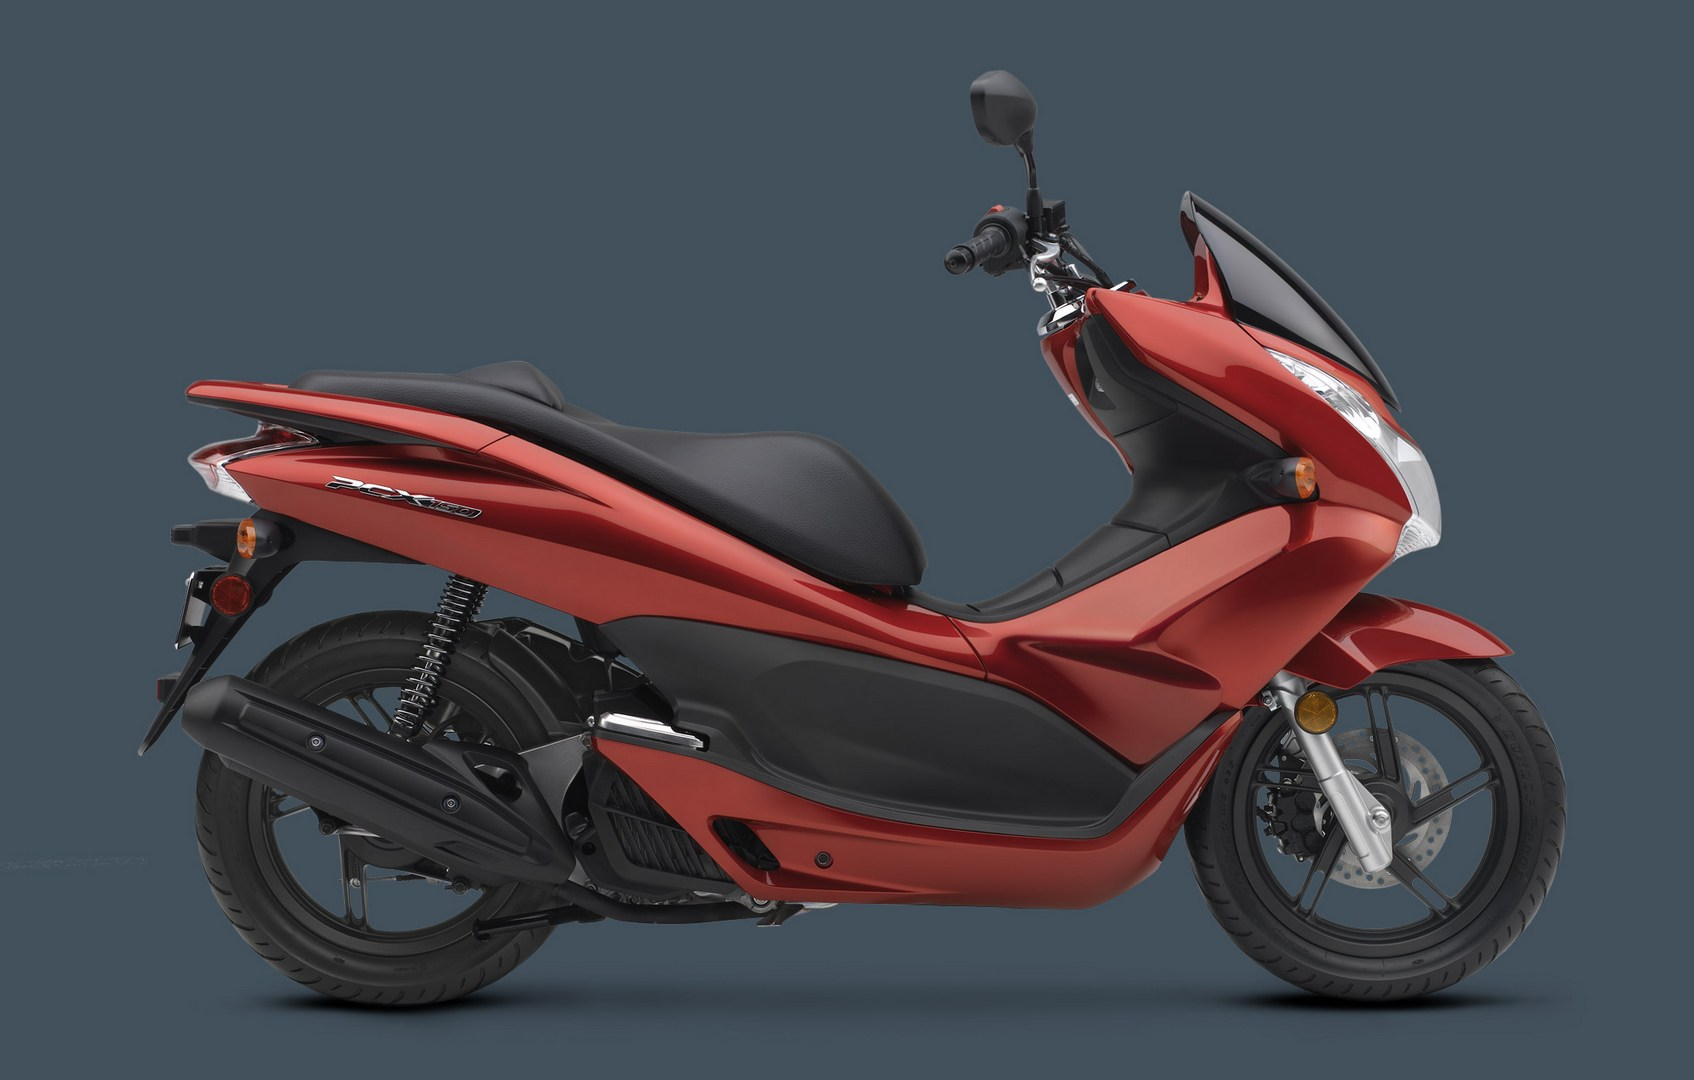 2013 honda pcx150 scooter does 102 mpg 2 3 l 100 km autoevolution. Black Bedroom Furniture Sets. Home Design Ideas